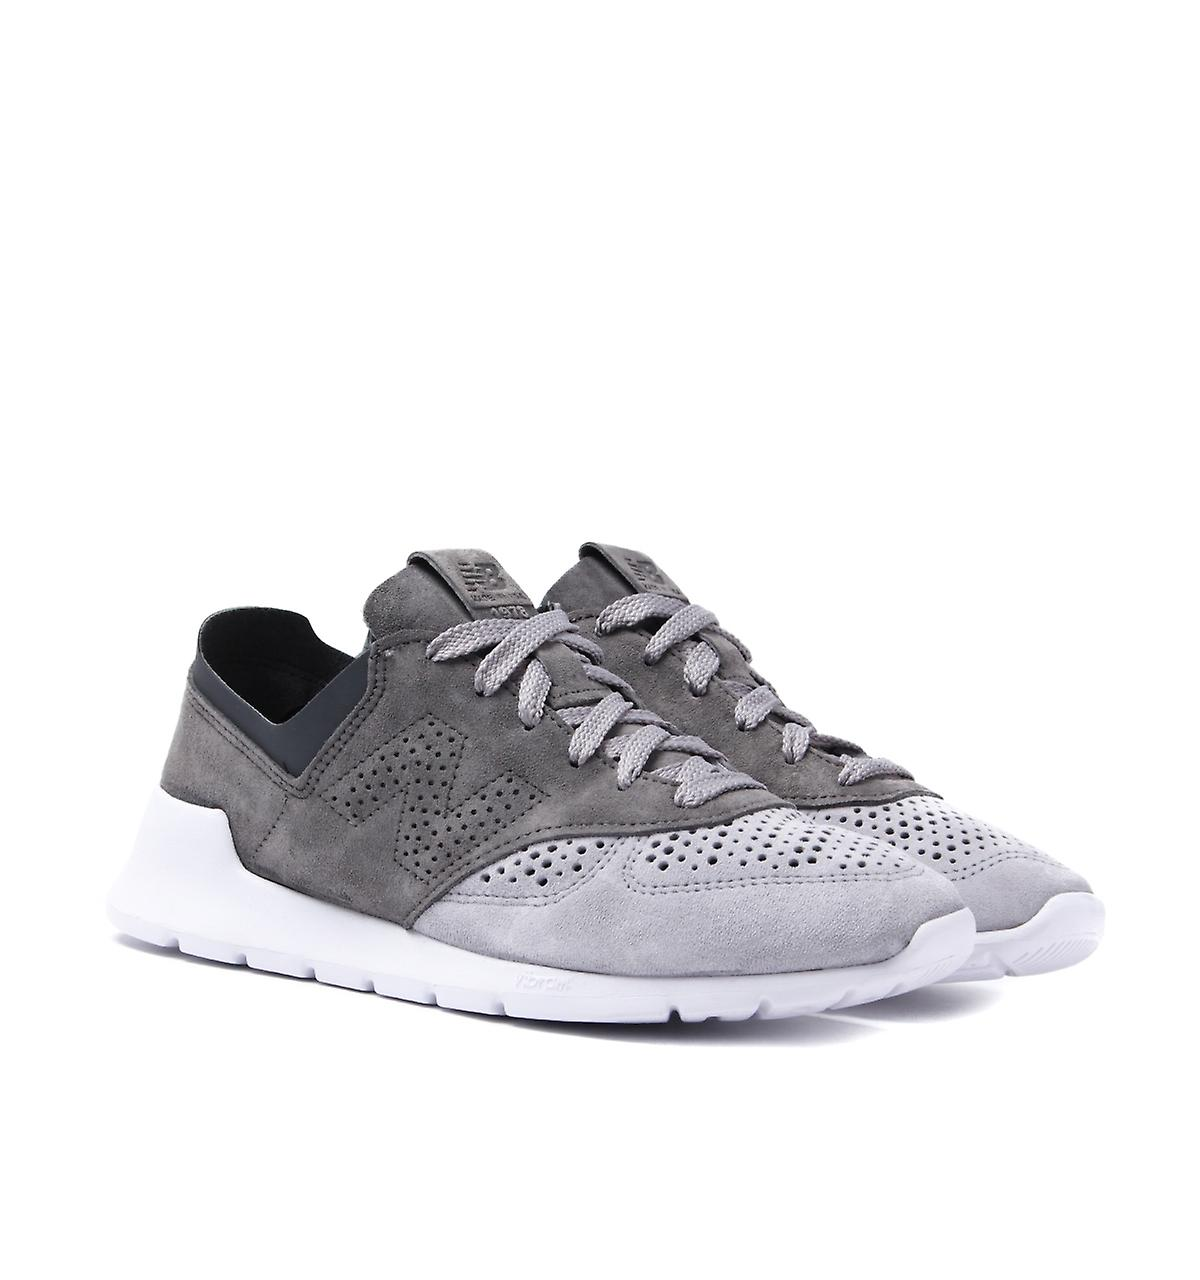 New Balance ML 1978 Grey Suede Vibram Sole Trainers